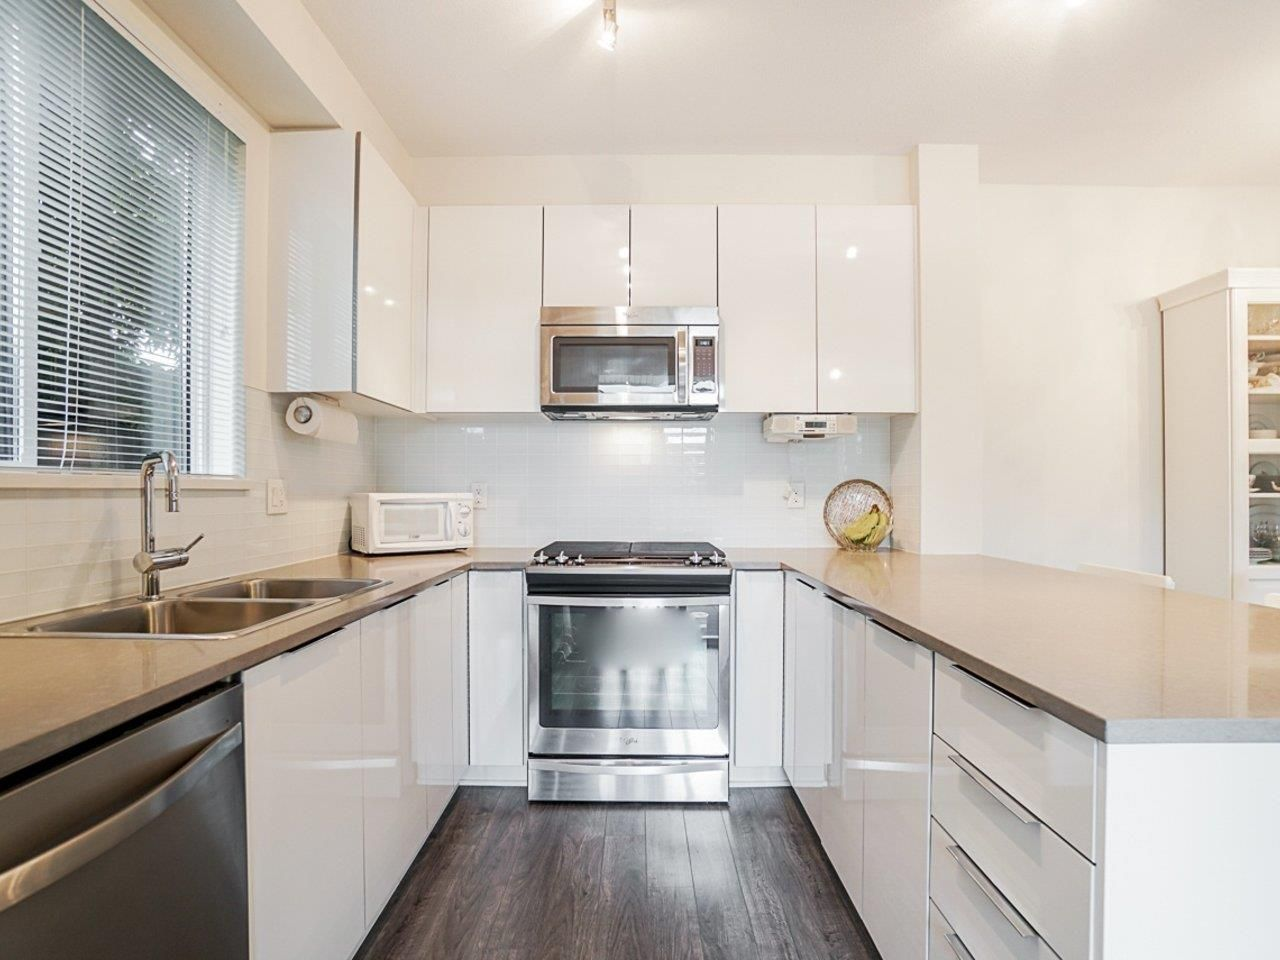 Photo 12: Photos: 108 1151 WINDSOR Mews in Coquitlam: New Horizons Condo for sale : MLS®# R2500299